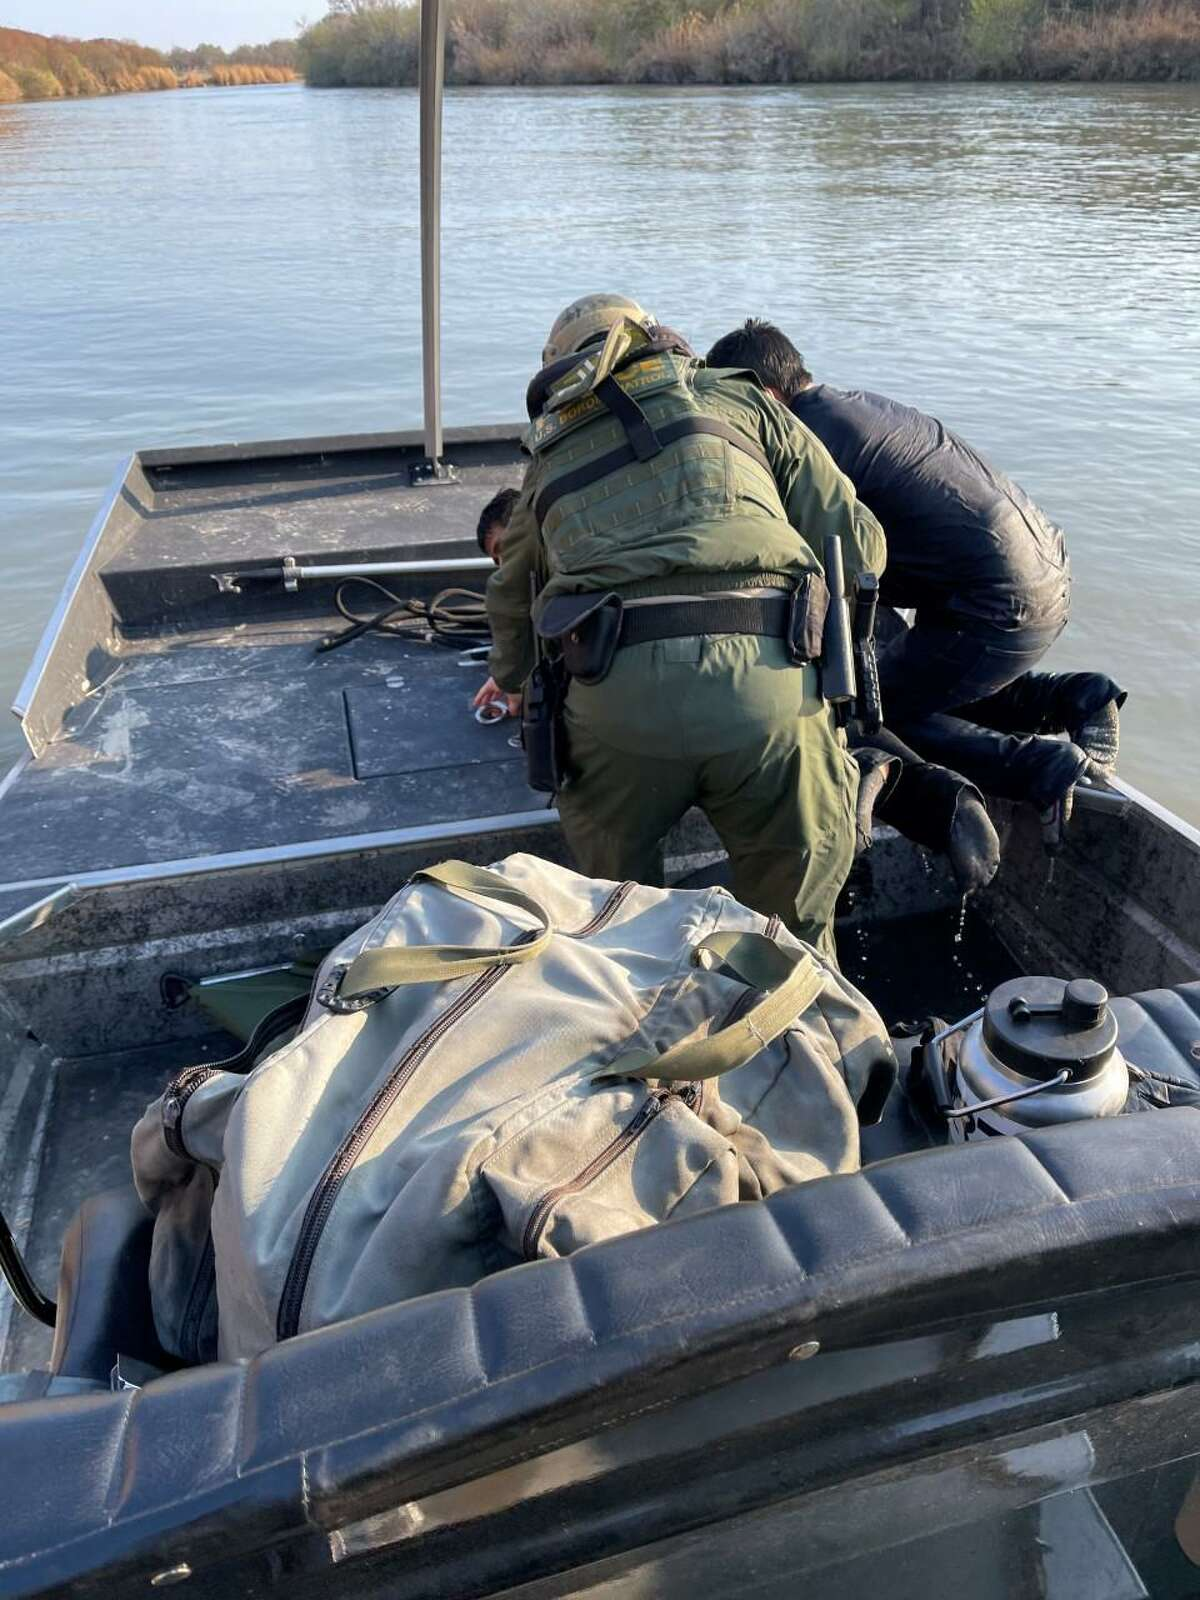 U.S. Border Patrol agents rescued two people from drowning in the Rio Grande. Authorities said the two individuals were immigrants from Mexico who attempted to cross the border illegally.